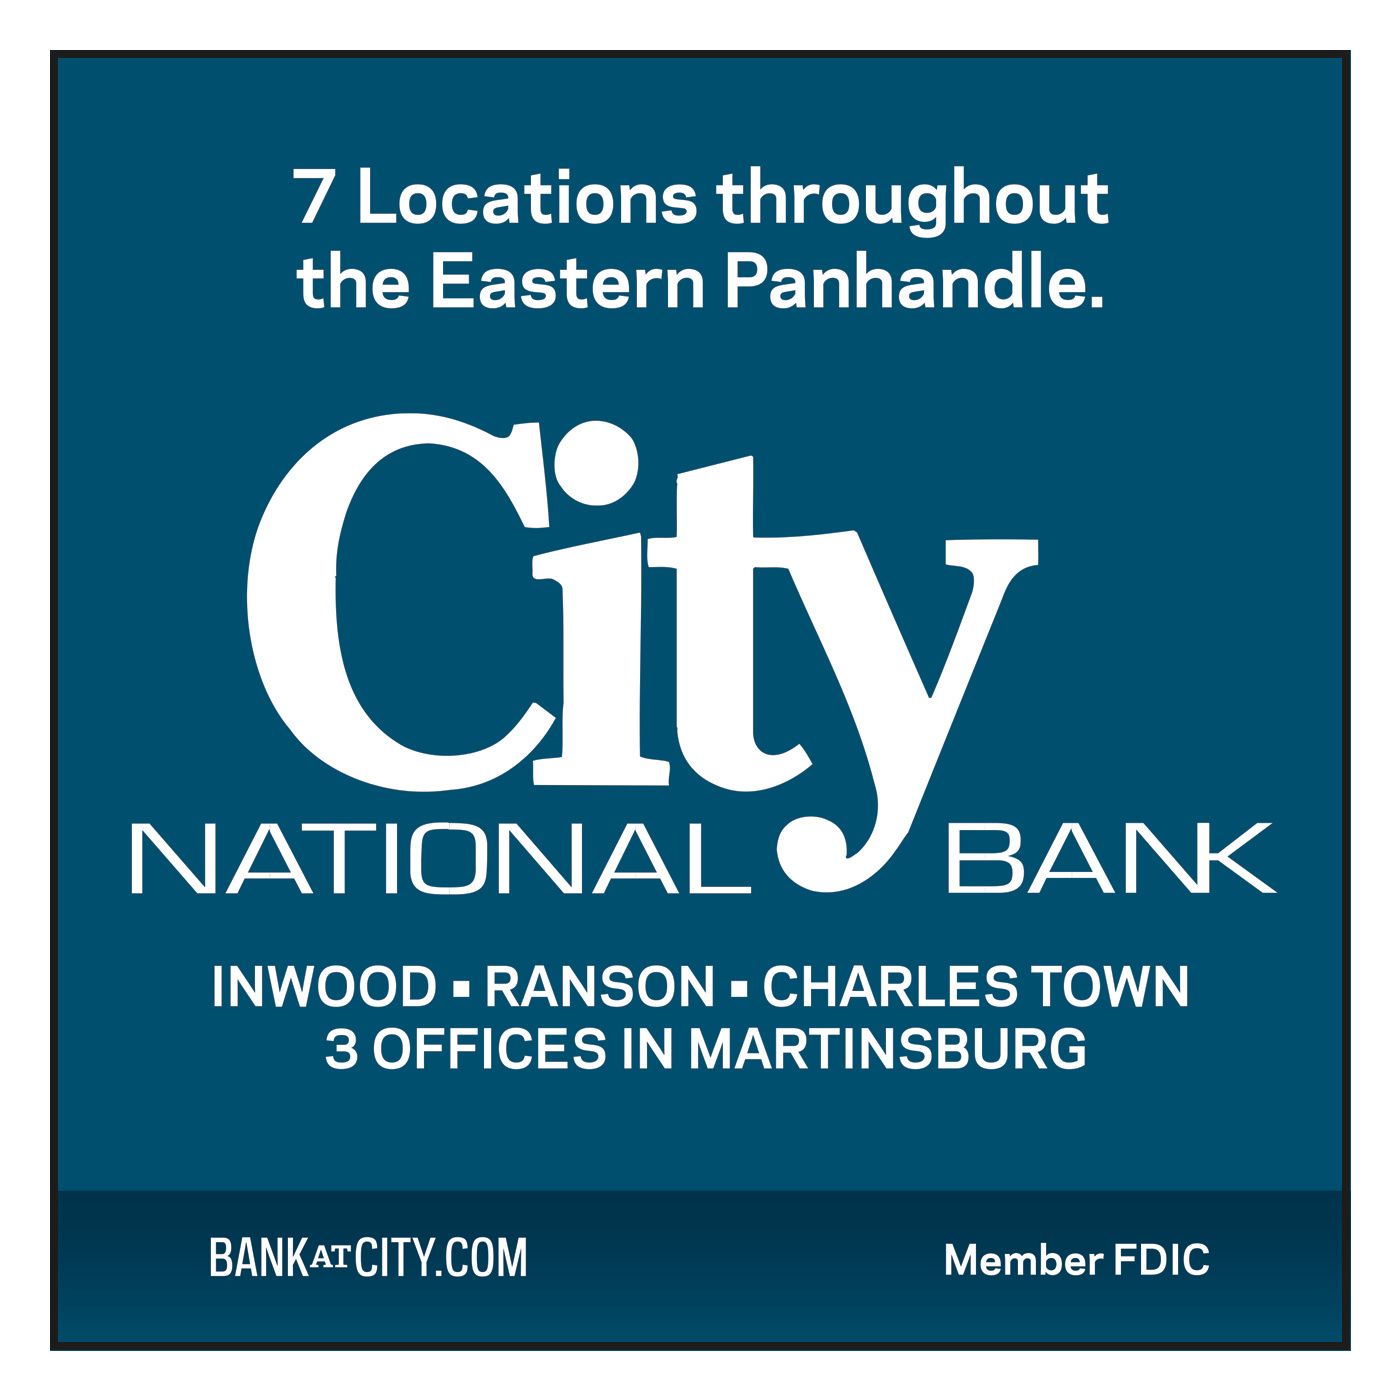 City National Bank 18 (1)